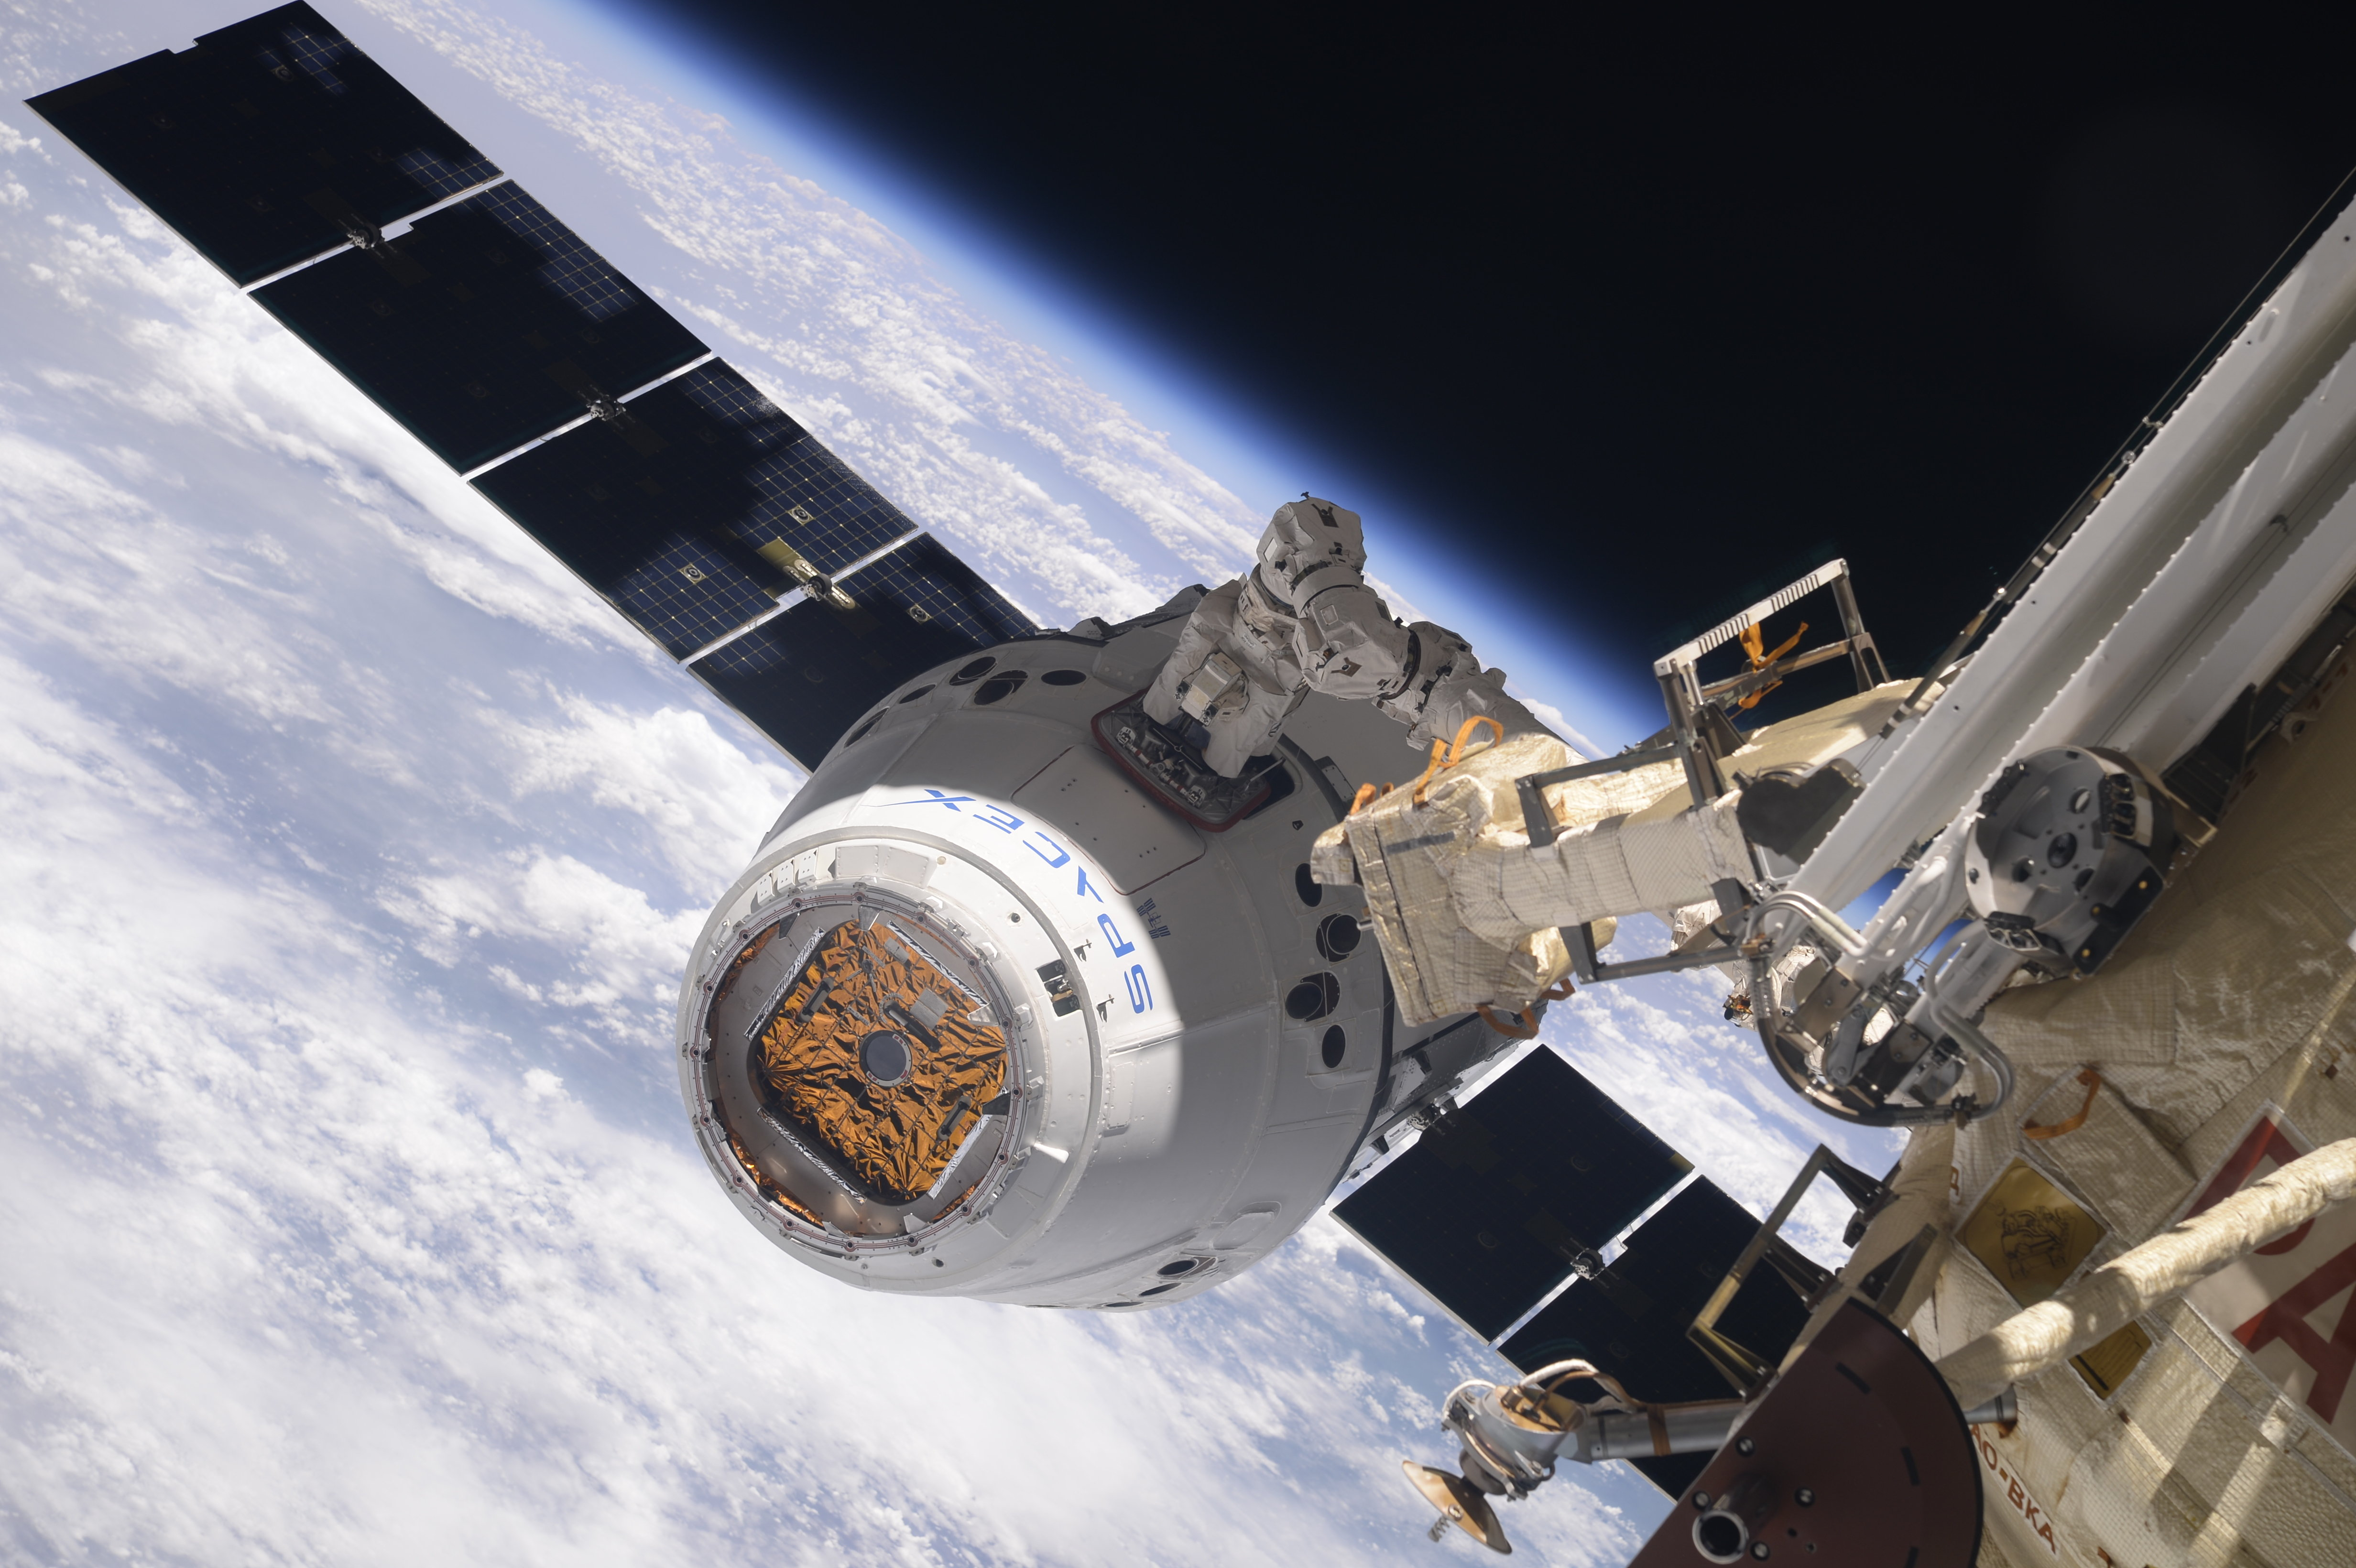 Dragon CRS-14 Arrives at ISS after Textbook Rendezvous for Critical